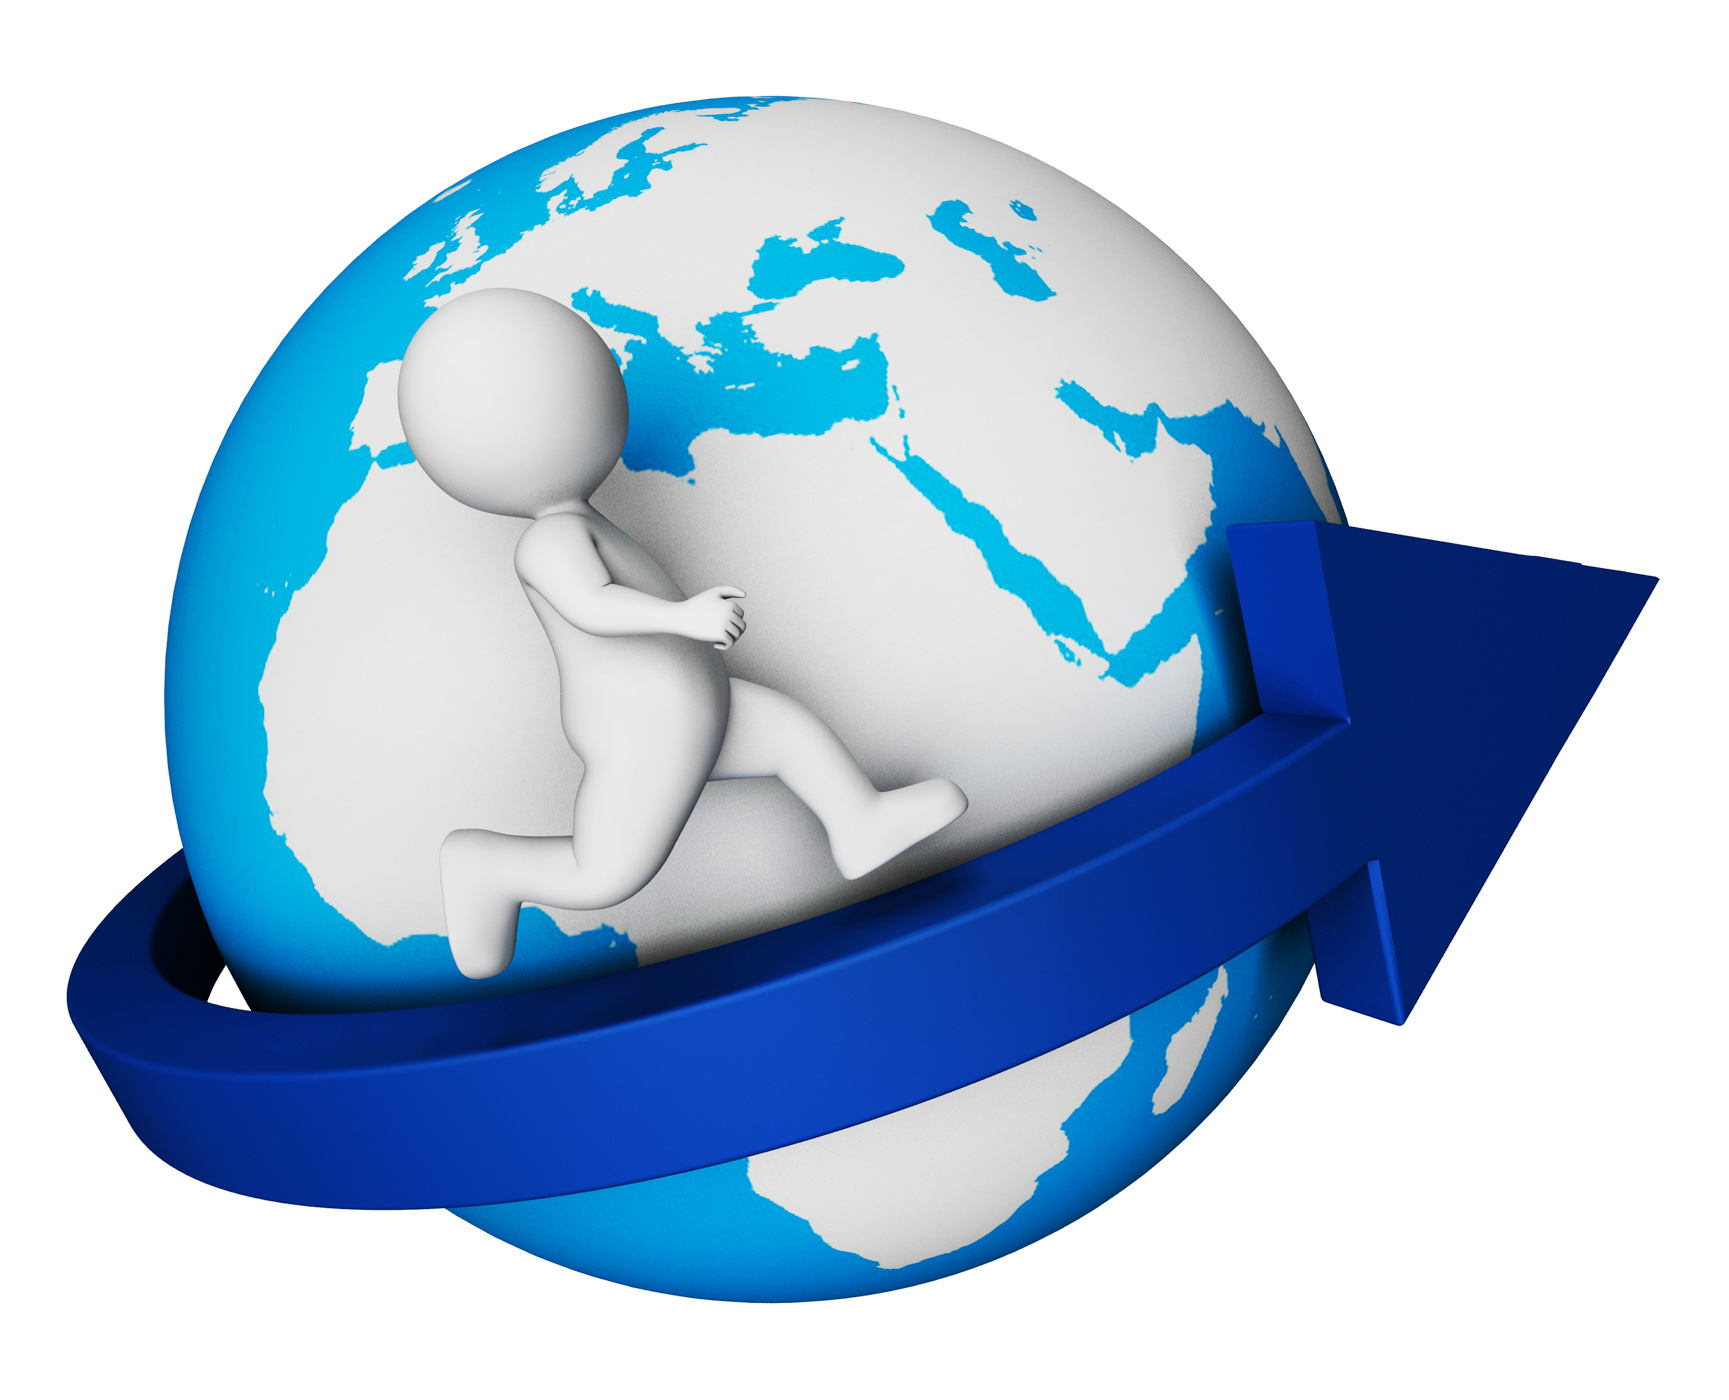 Worldwide Globe Means Render Globally And Globalisation 3d Rendering, Character, Worldly, World, Rendering, HQ Photo